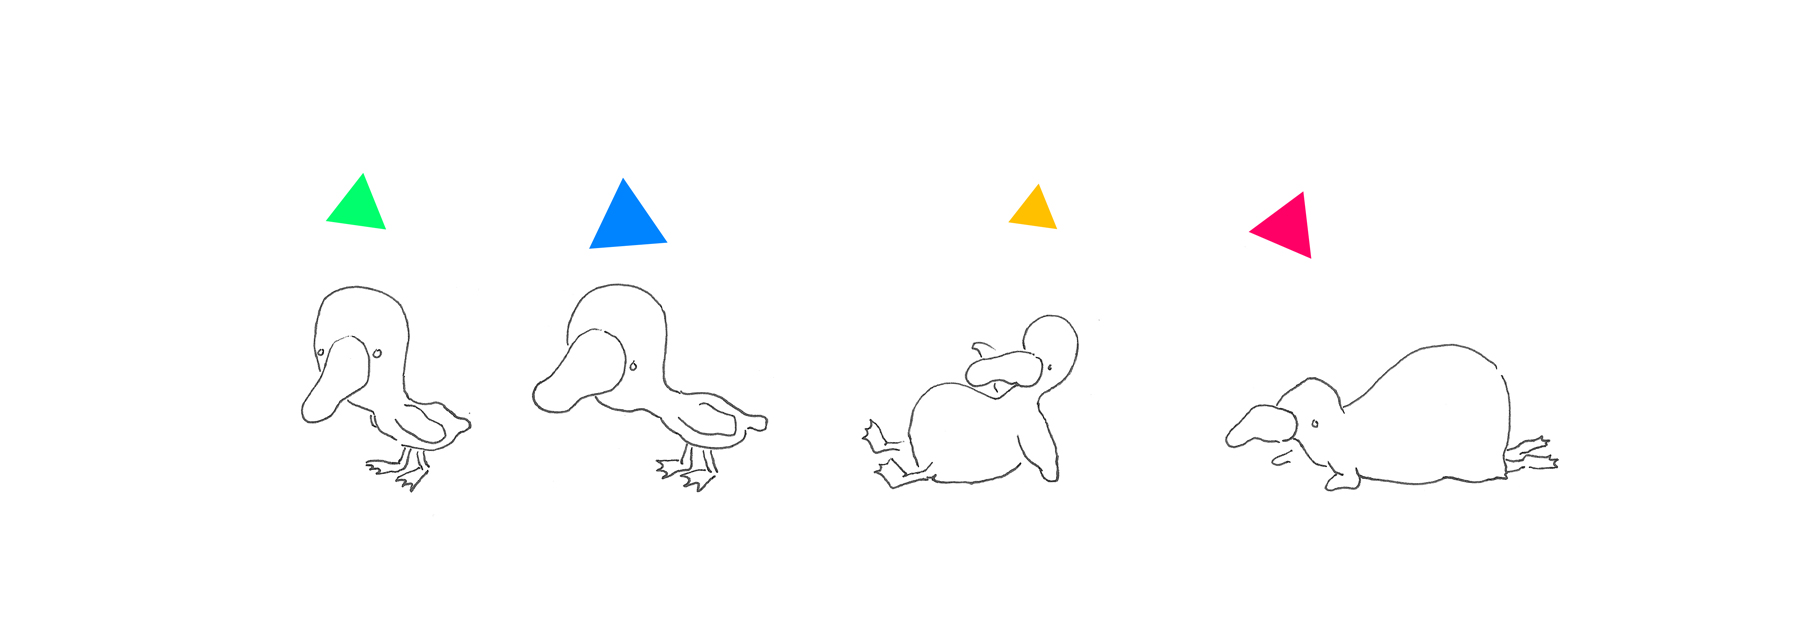 triangle_ducks